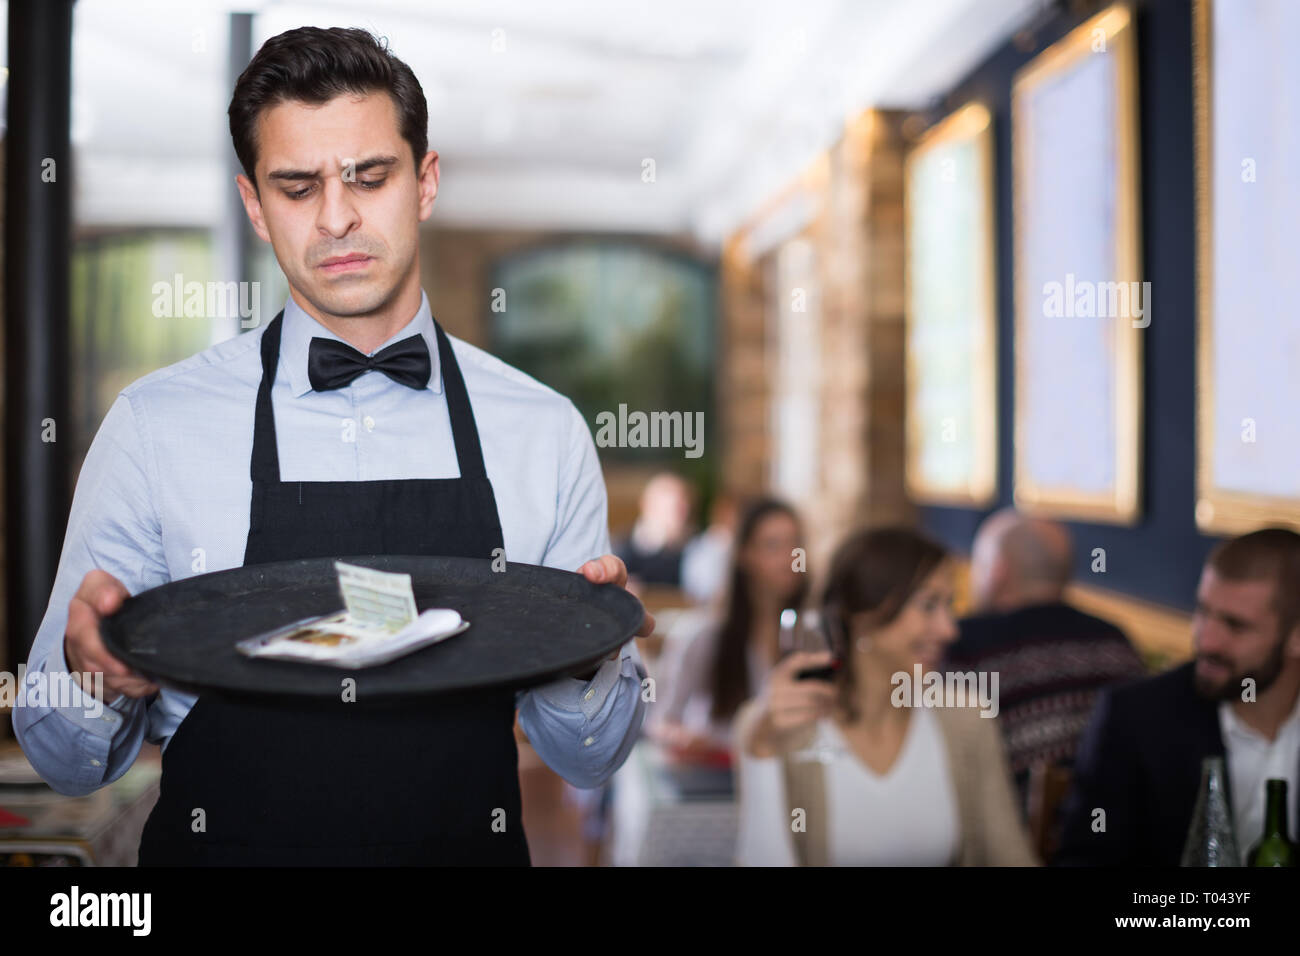 frustrated waiter looking at a tip on a tray in a cafe - Stock Image